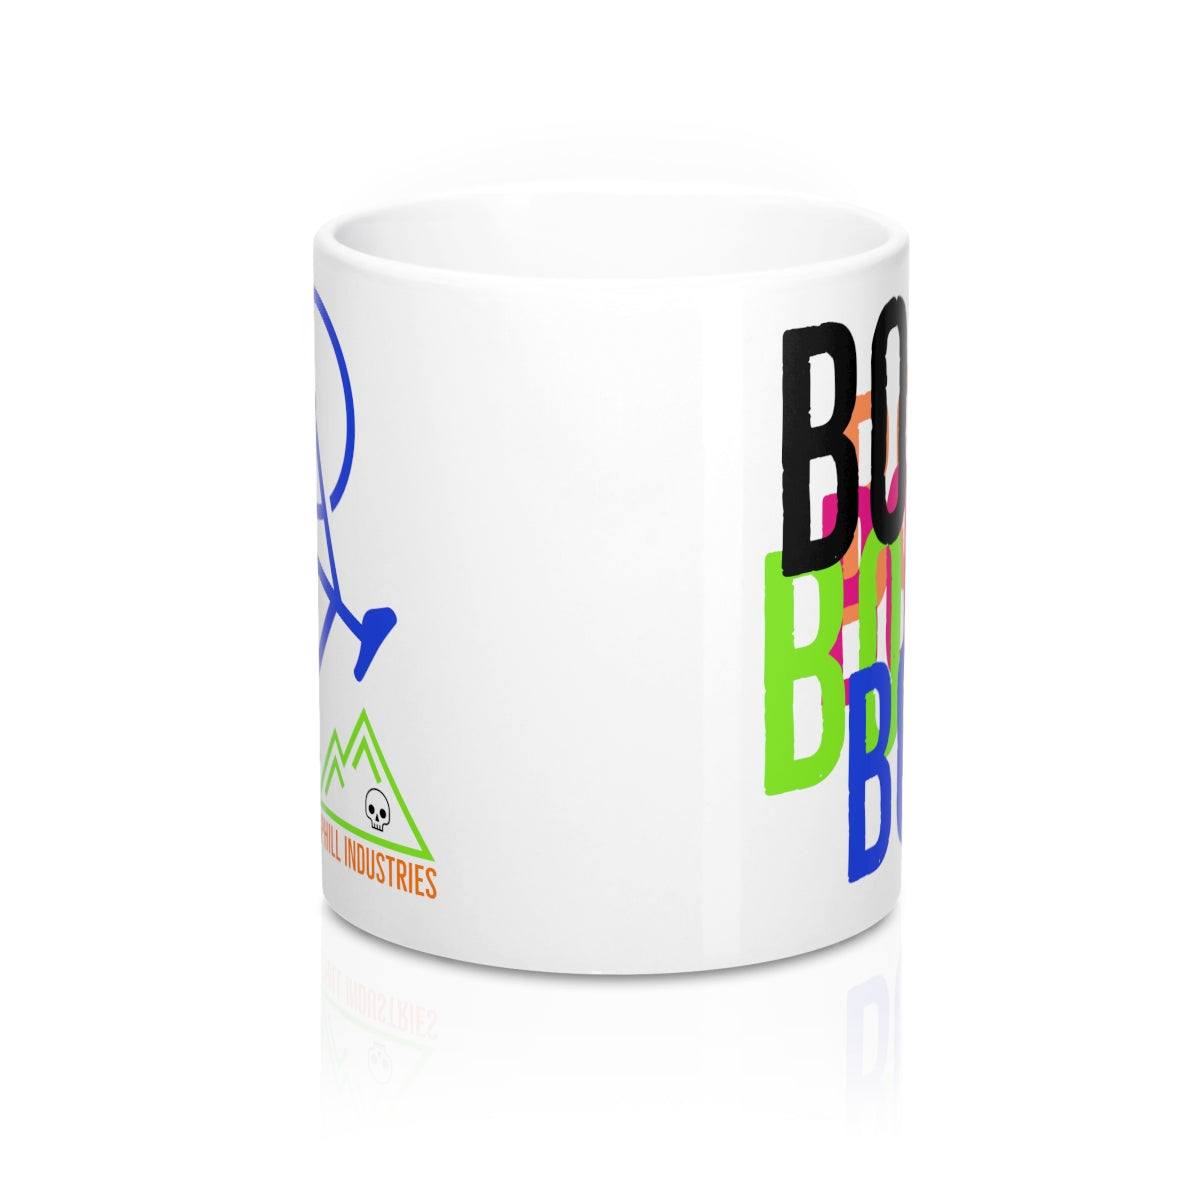 Uphill Industries Cycling Coffee Mug - BONK #dead - Uphill Industries Cycling Apparel